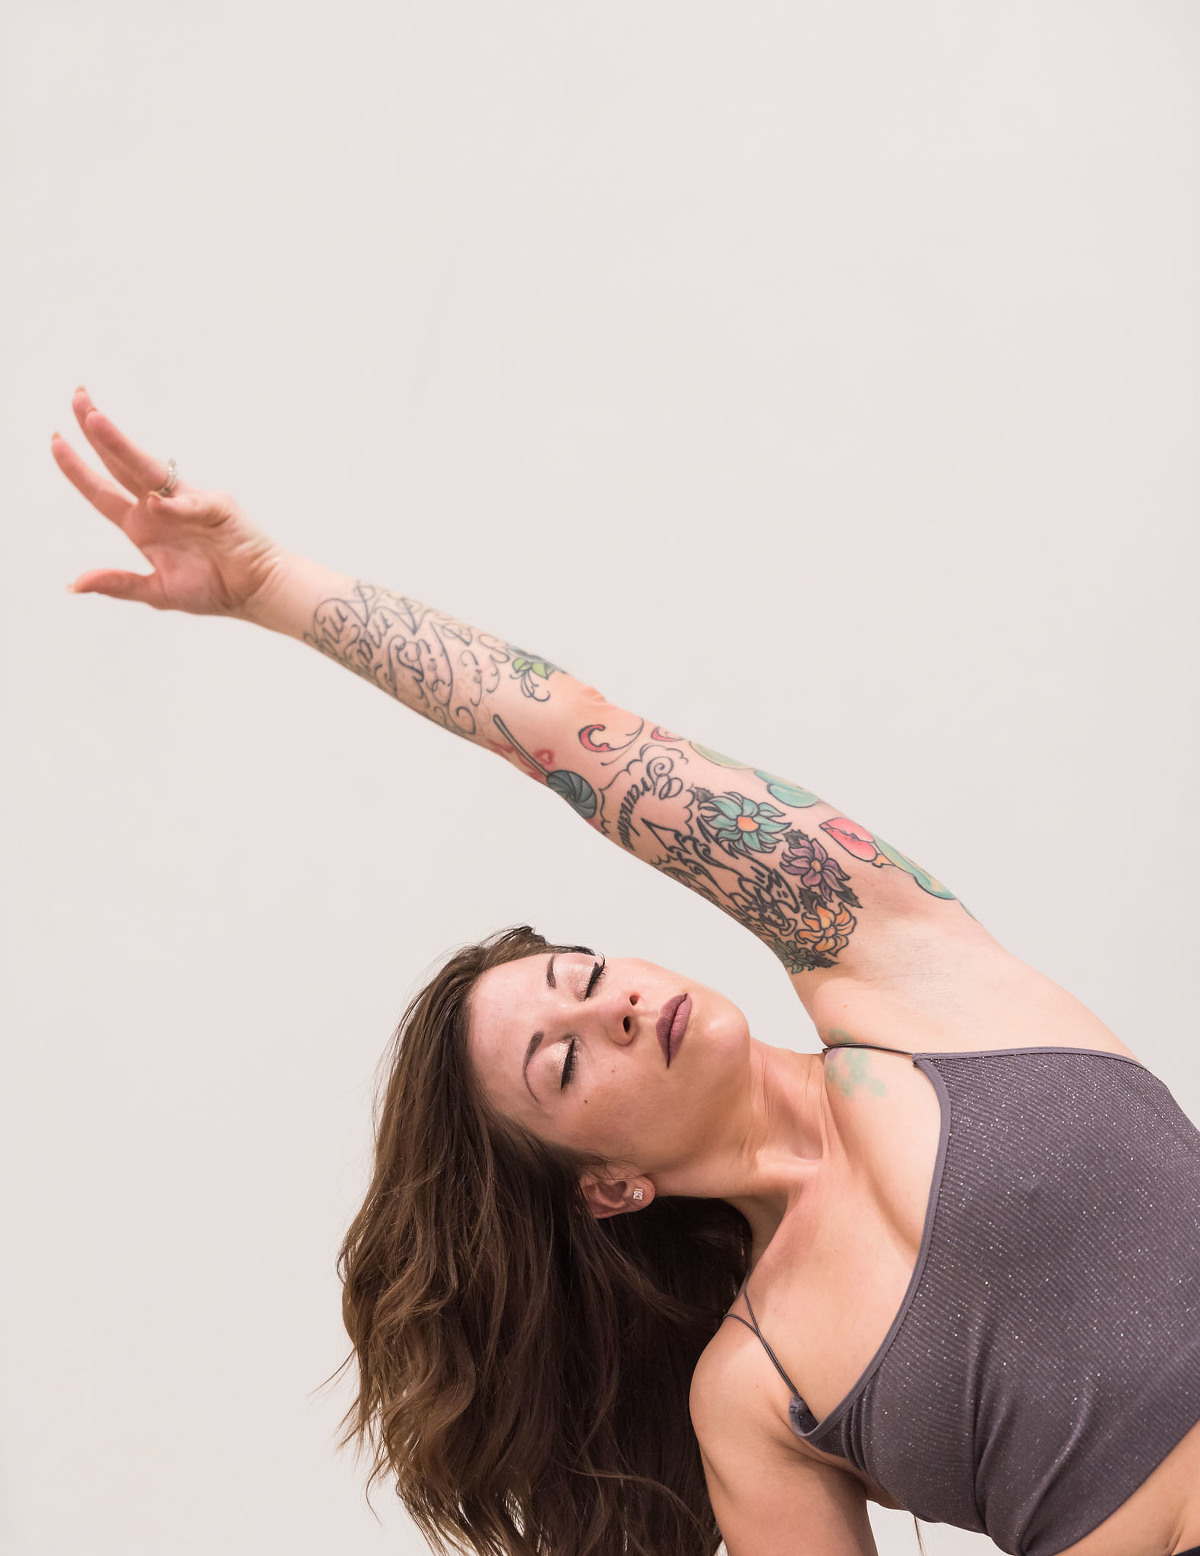 Brunette woman stretching in yoga pose during personal branding session at Fusion Yoga in Fort Wayne, Indiana